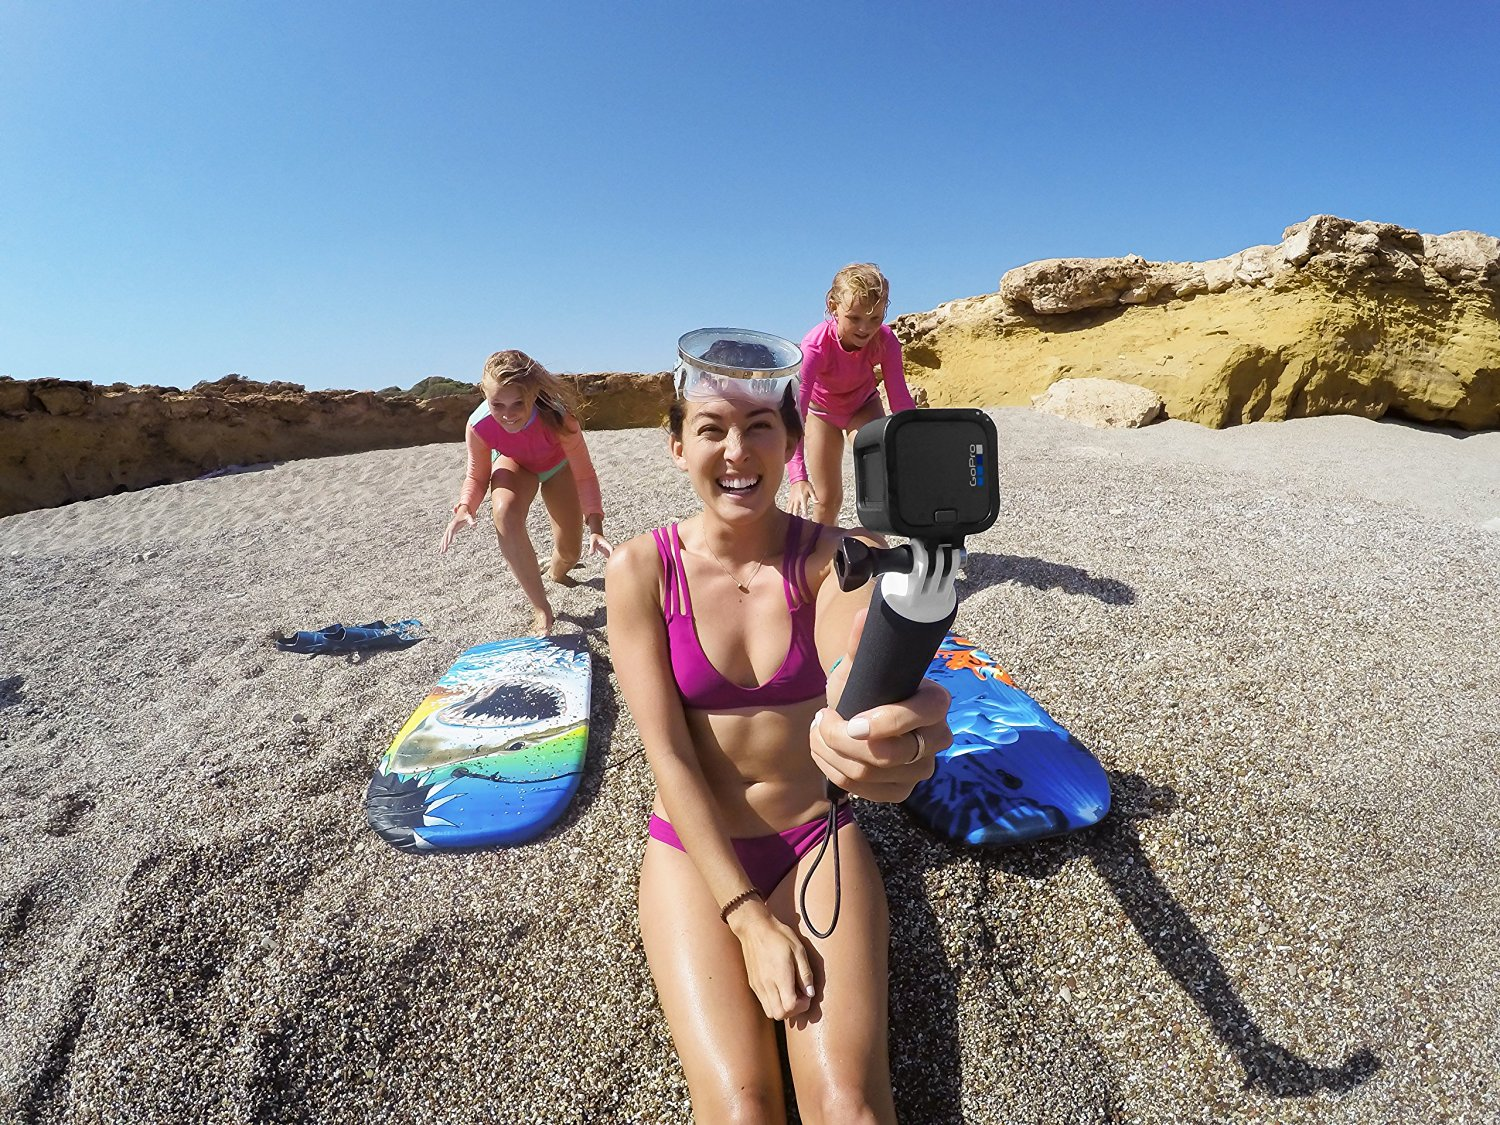 gopro hero5 session action cam compact